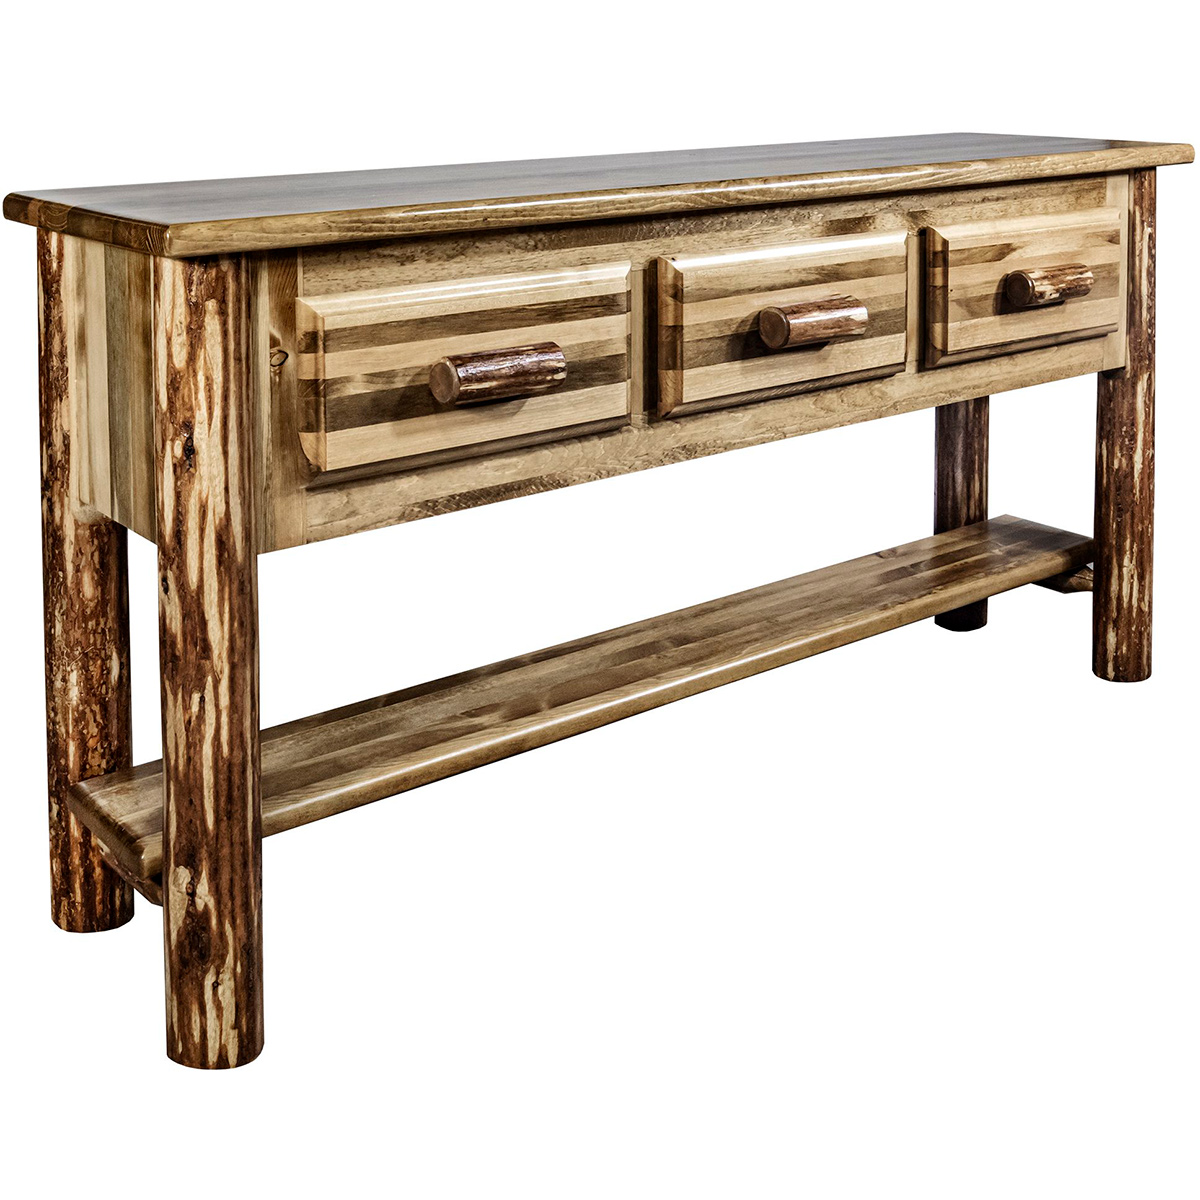 Woodsman Console Table with 3 Drawers